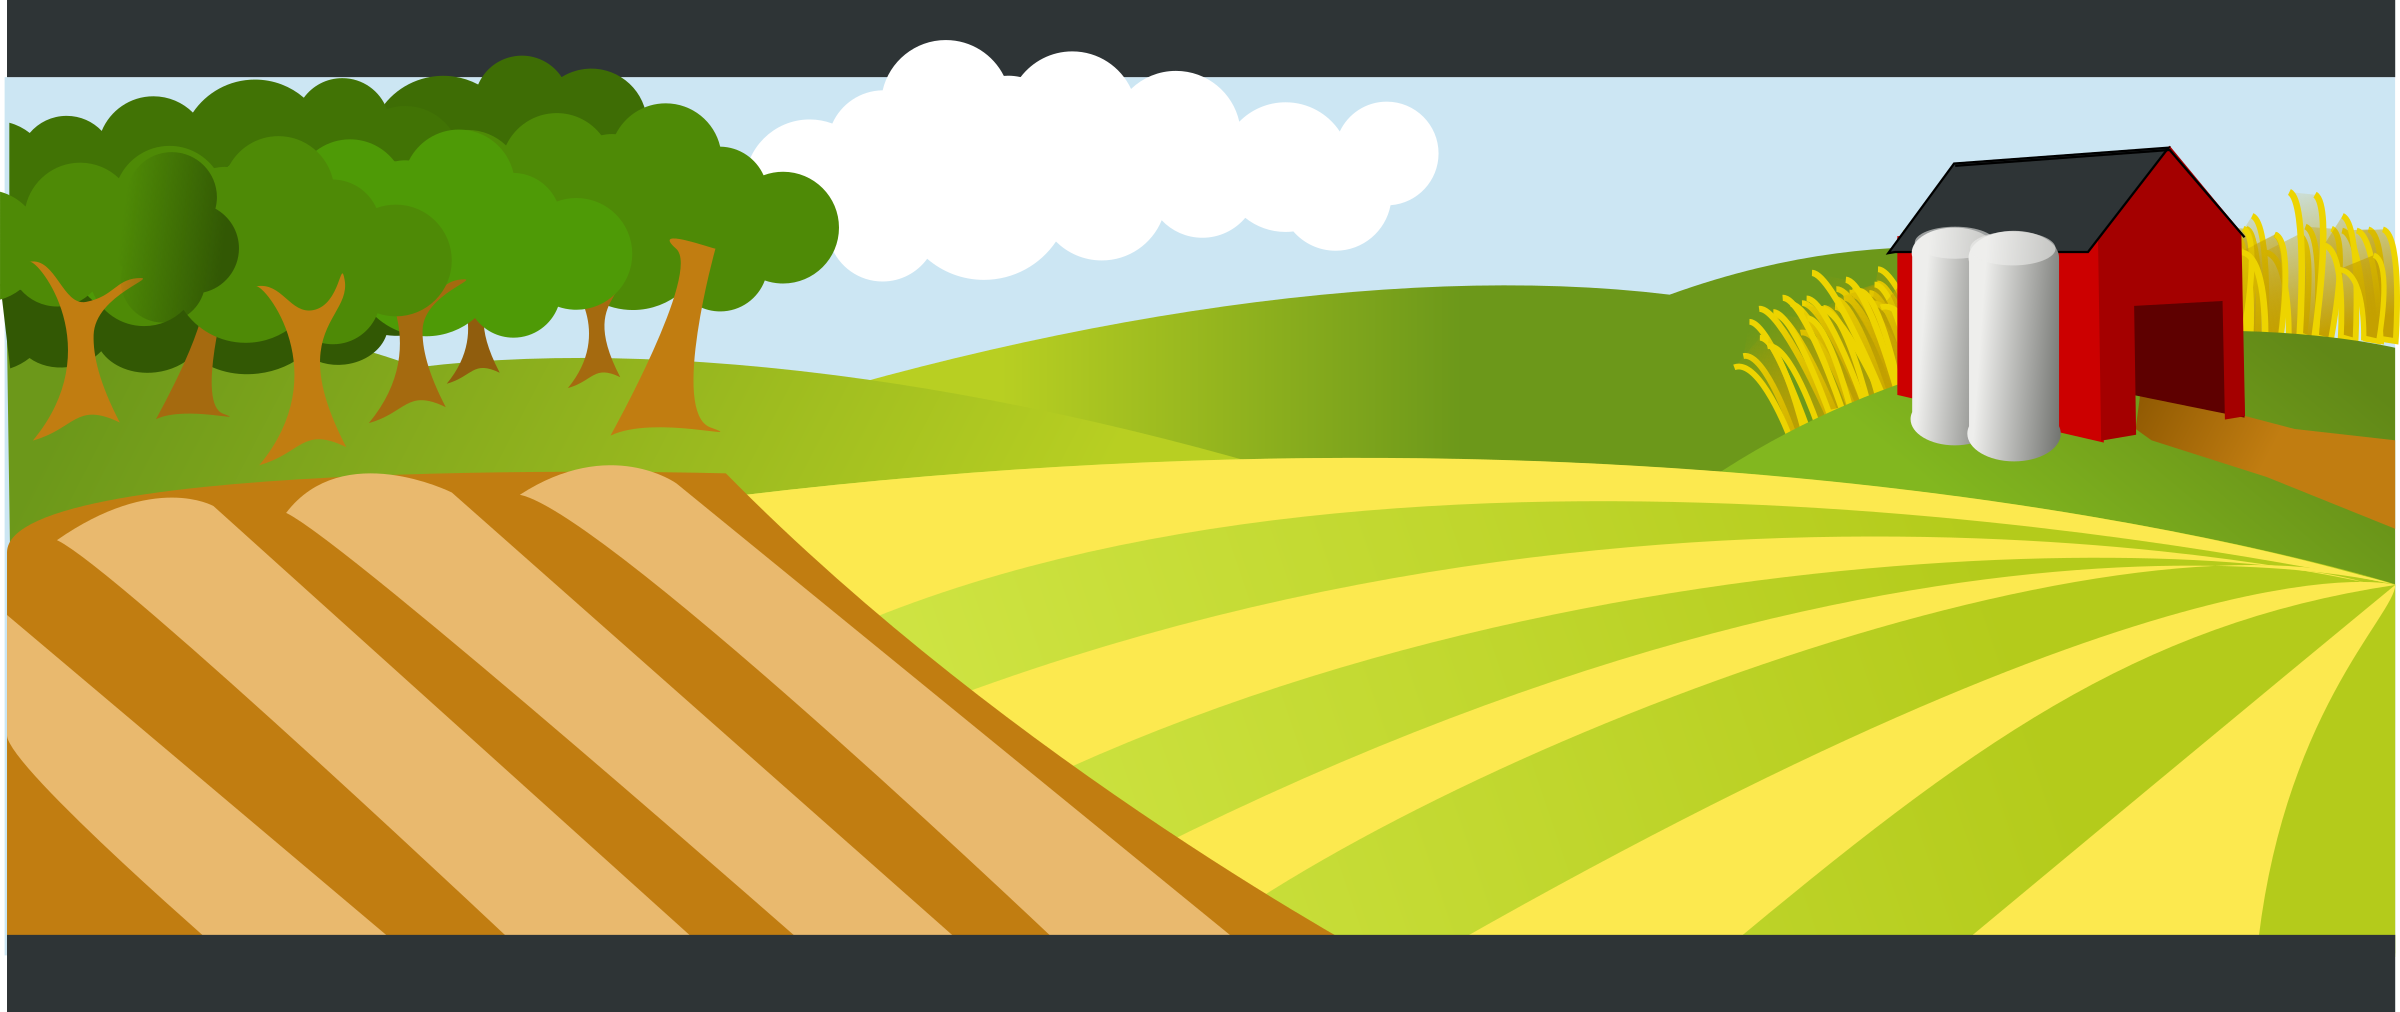 Farm clipart #9, Download drawings